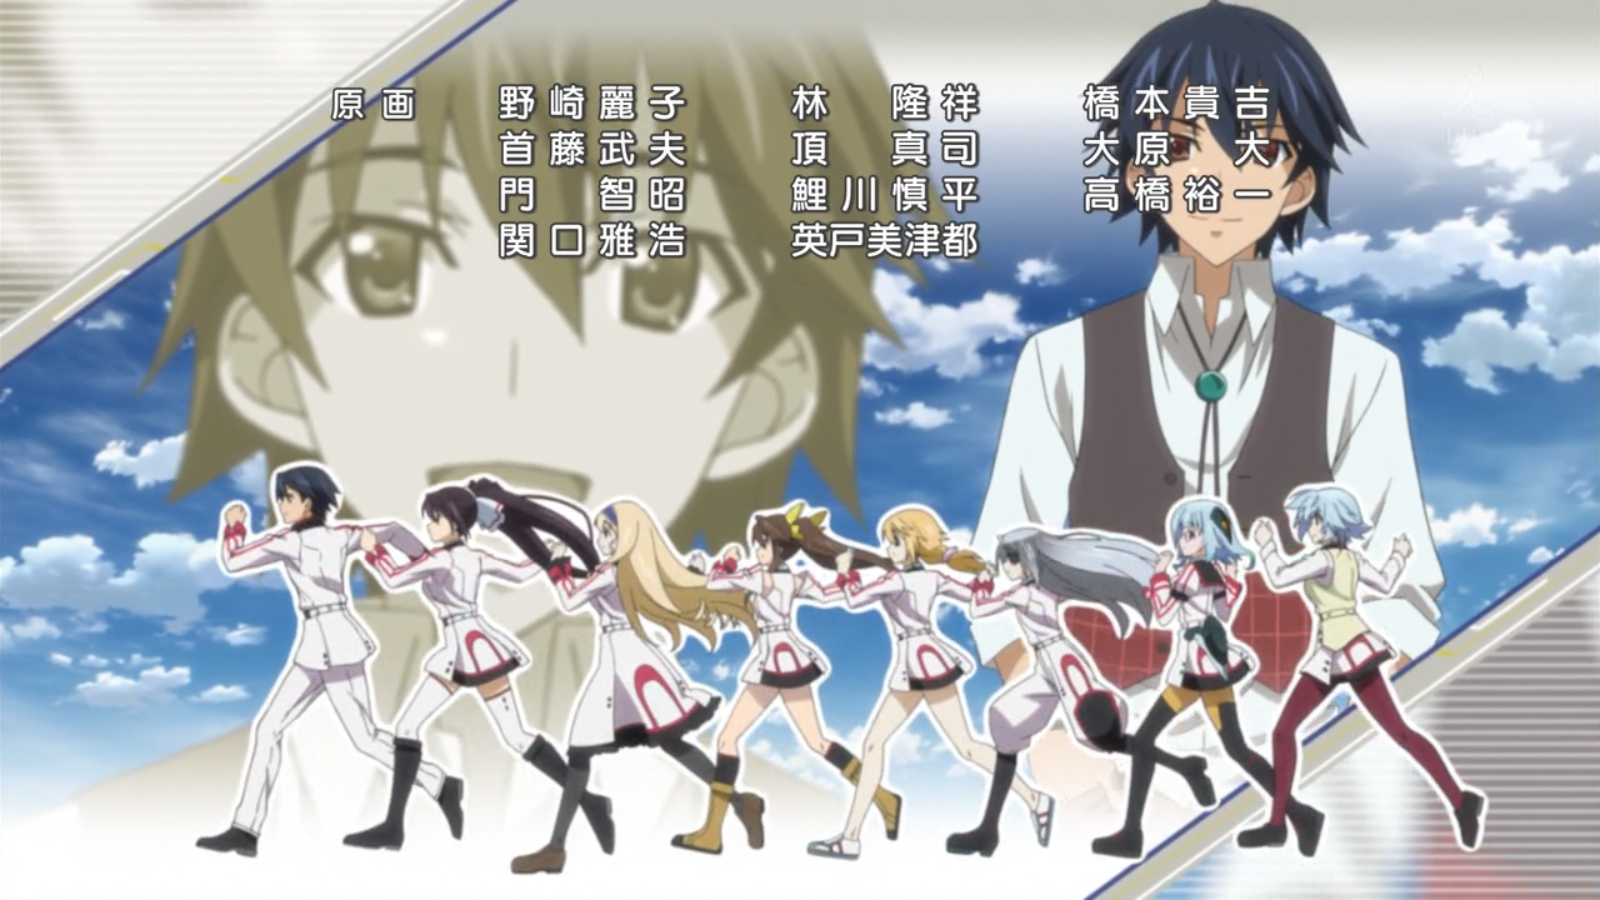 infinite stratos season 3